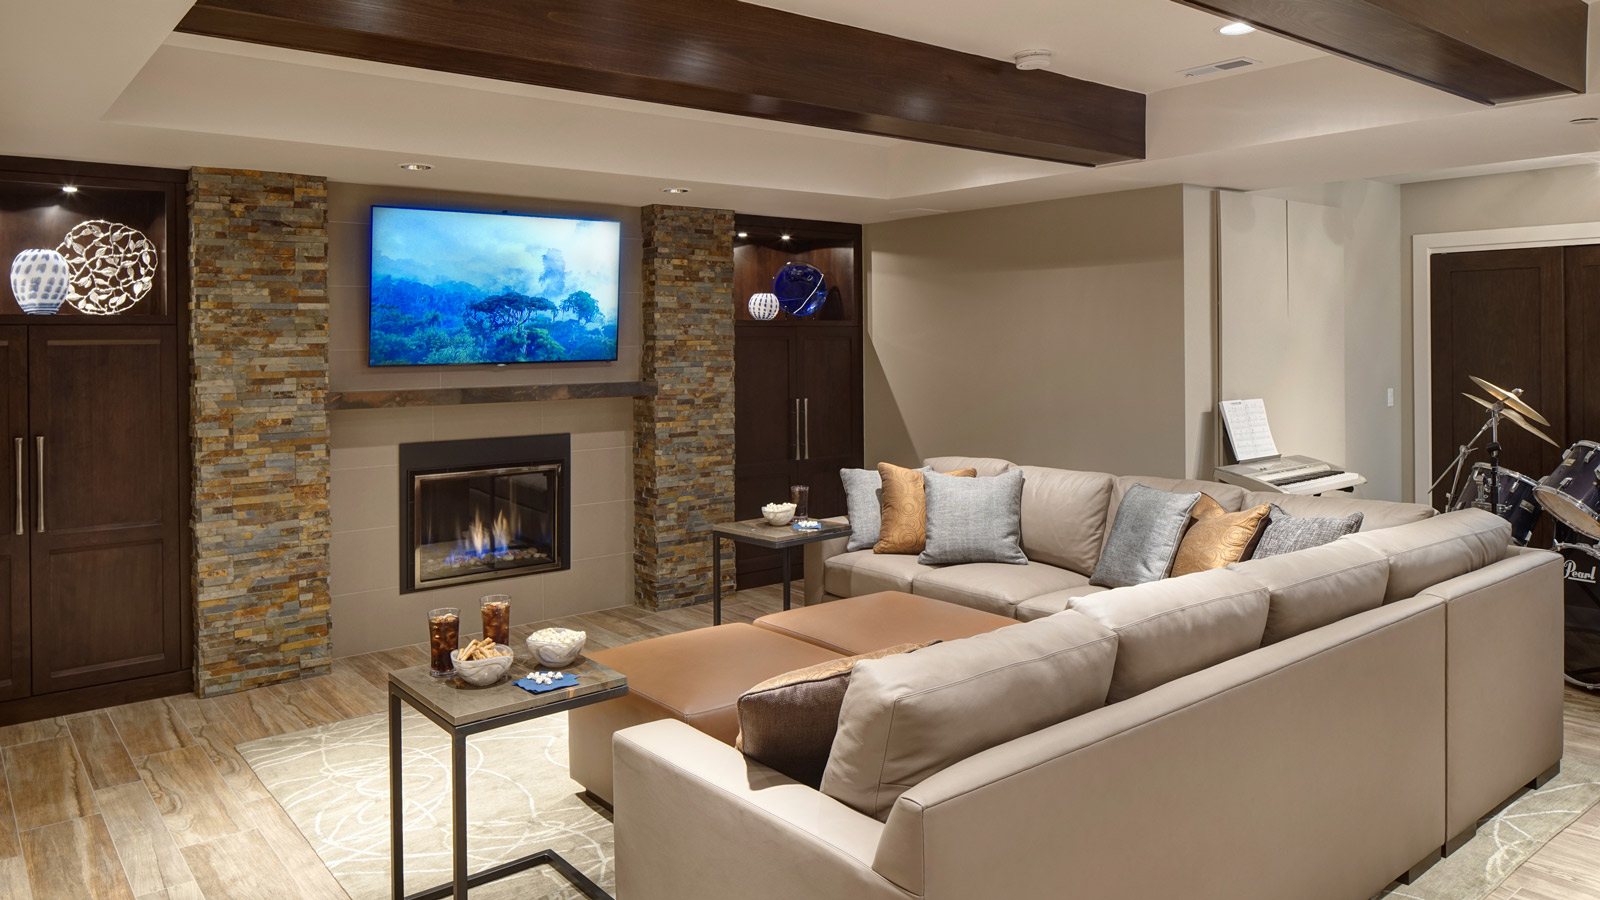 1600-x-900-Rec-Room-Re-imagined---Basement-Remodel-drury-design2